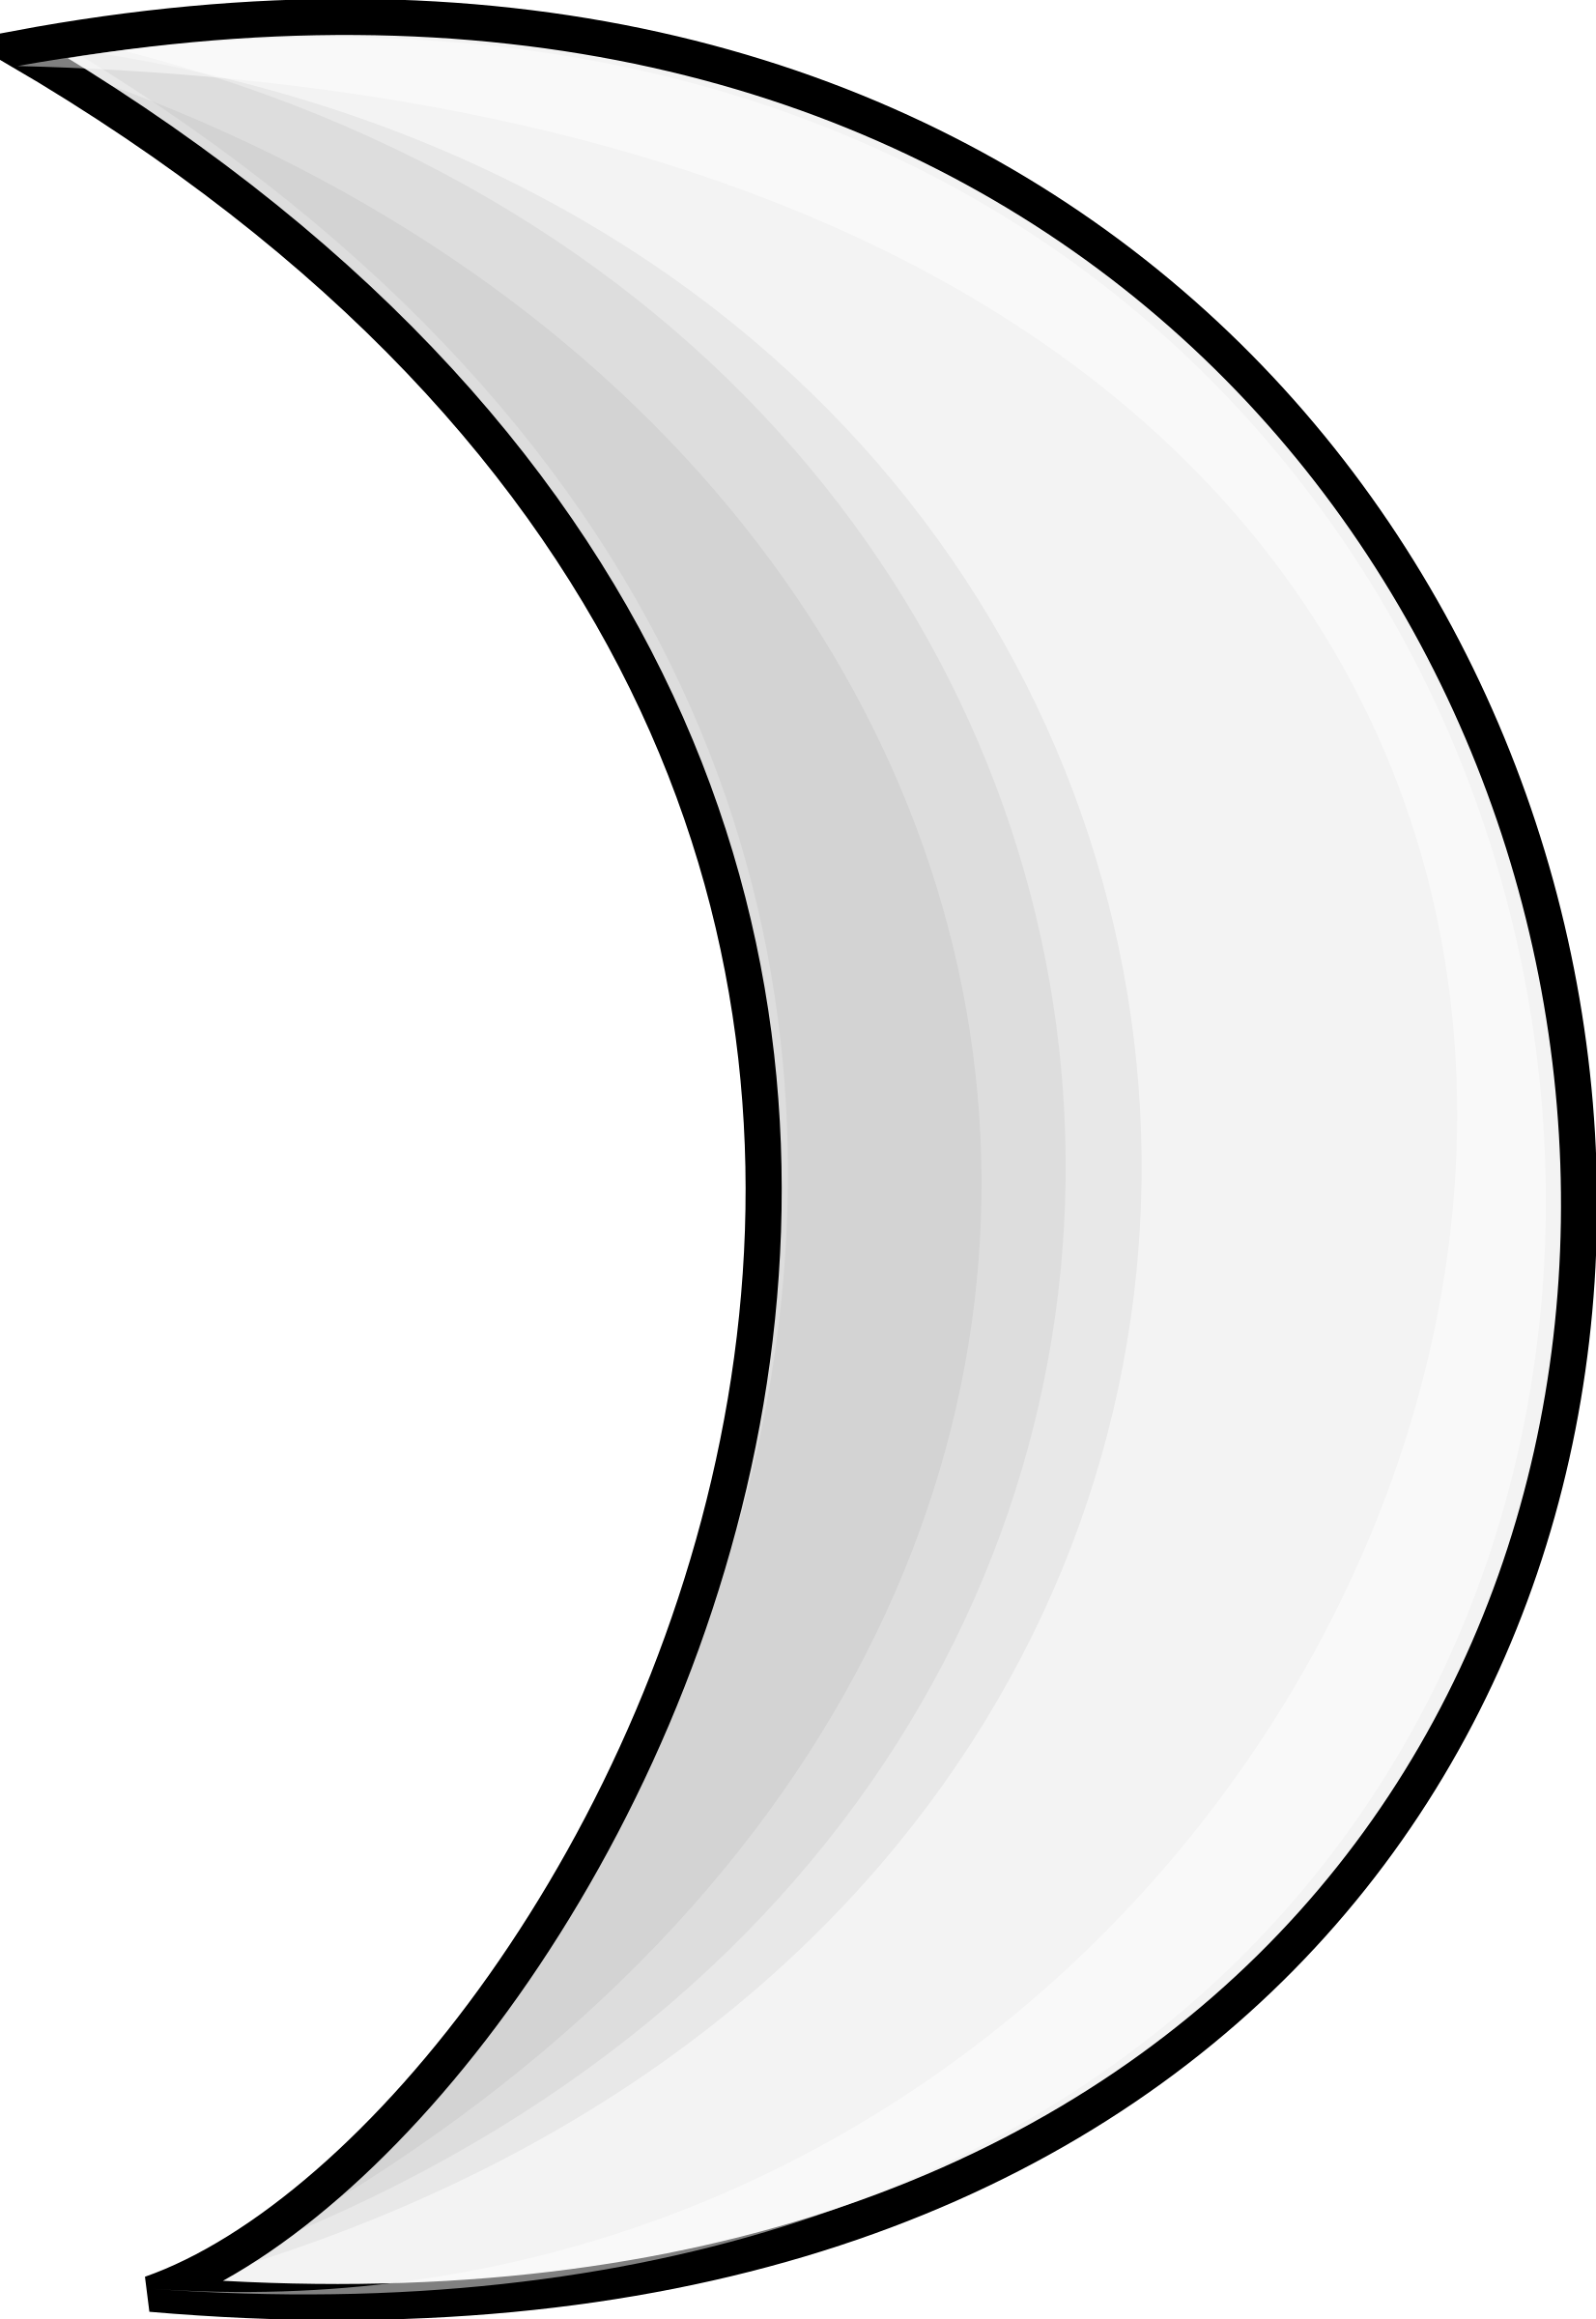 Weather Symbols: Moon (silver) by nicubunu